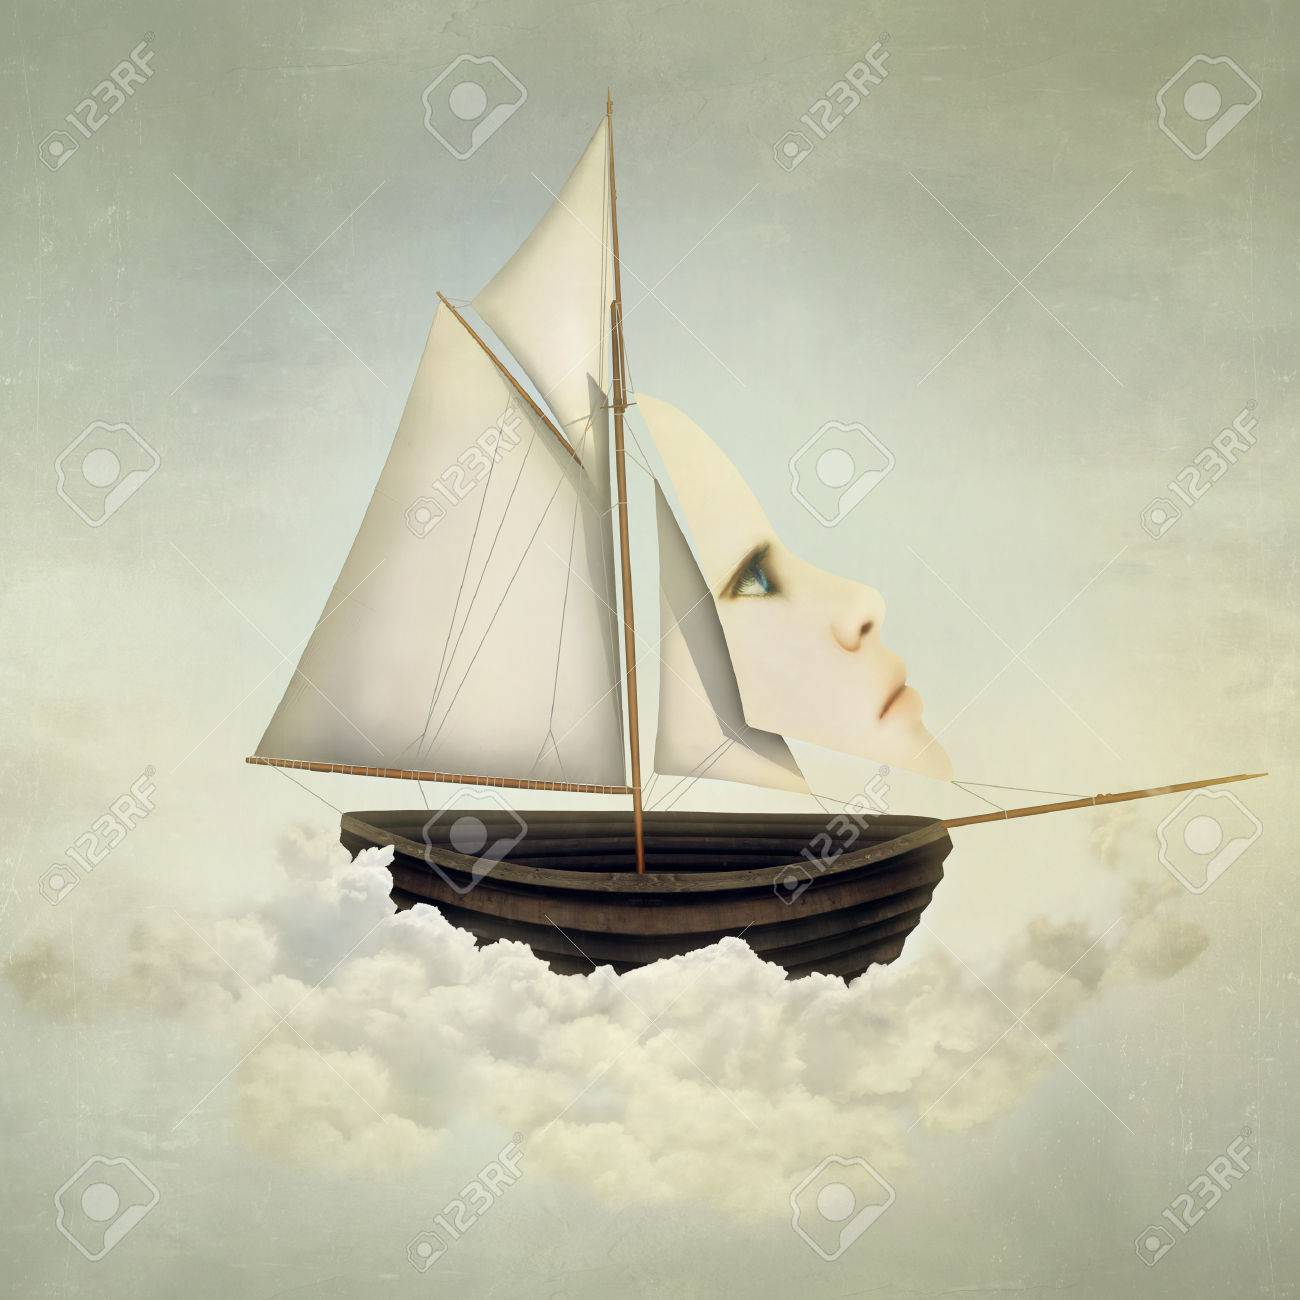 Surreal vessel above the clouds with full sail and a sail with a female face - 55092562